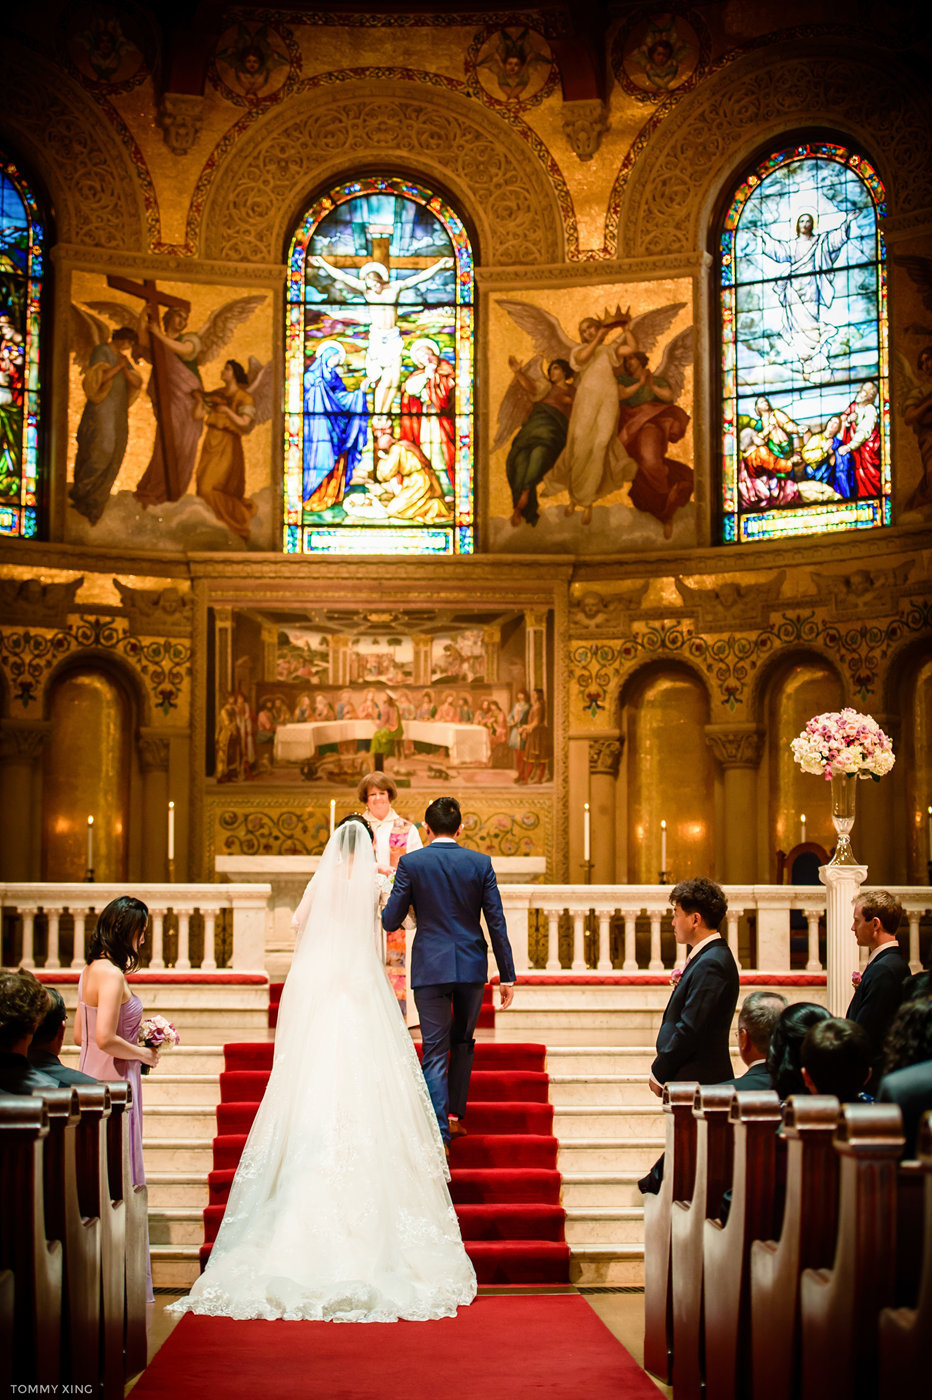 stanford memorial church wedding 旧金山湾区斯坦福教堂婚礼 Tommy Xing Photography 063.jpg